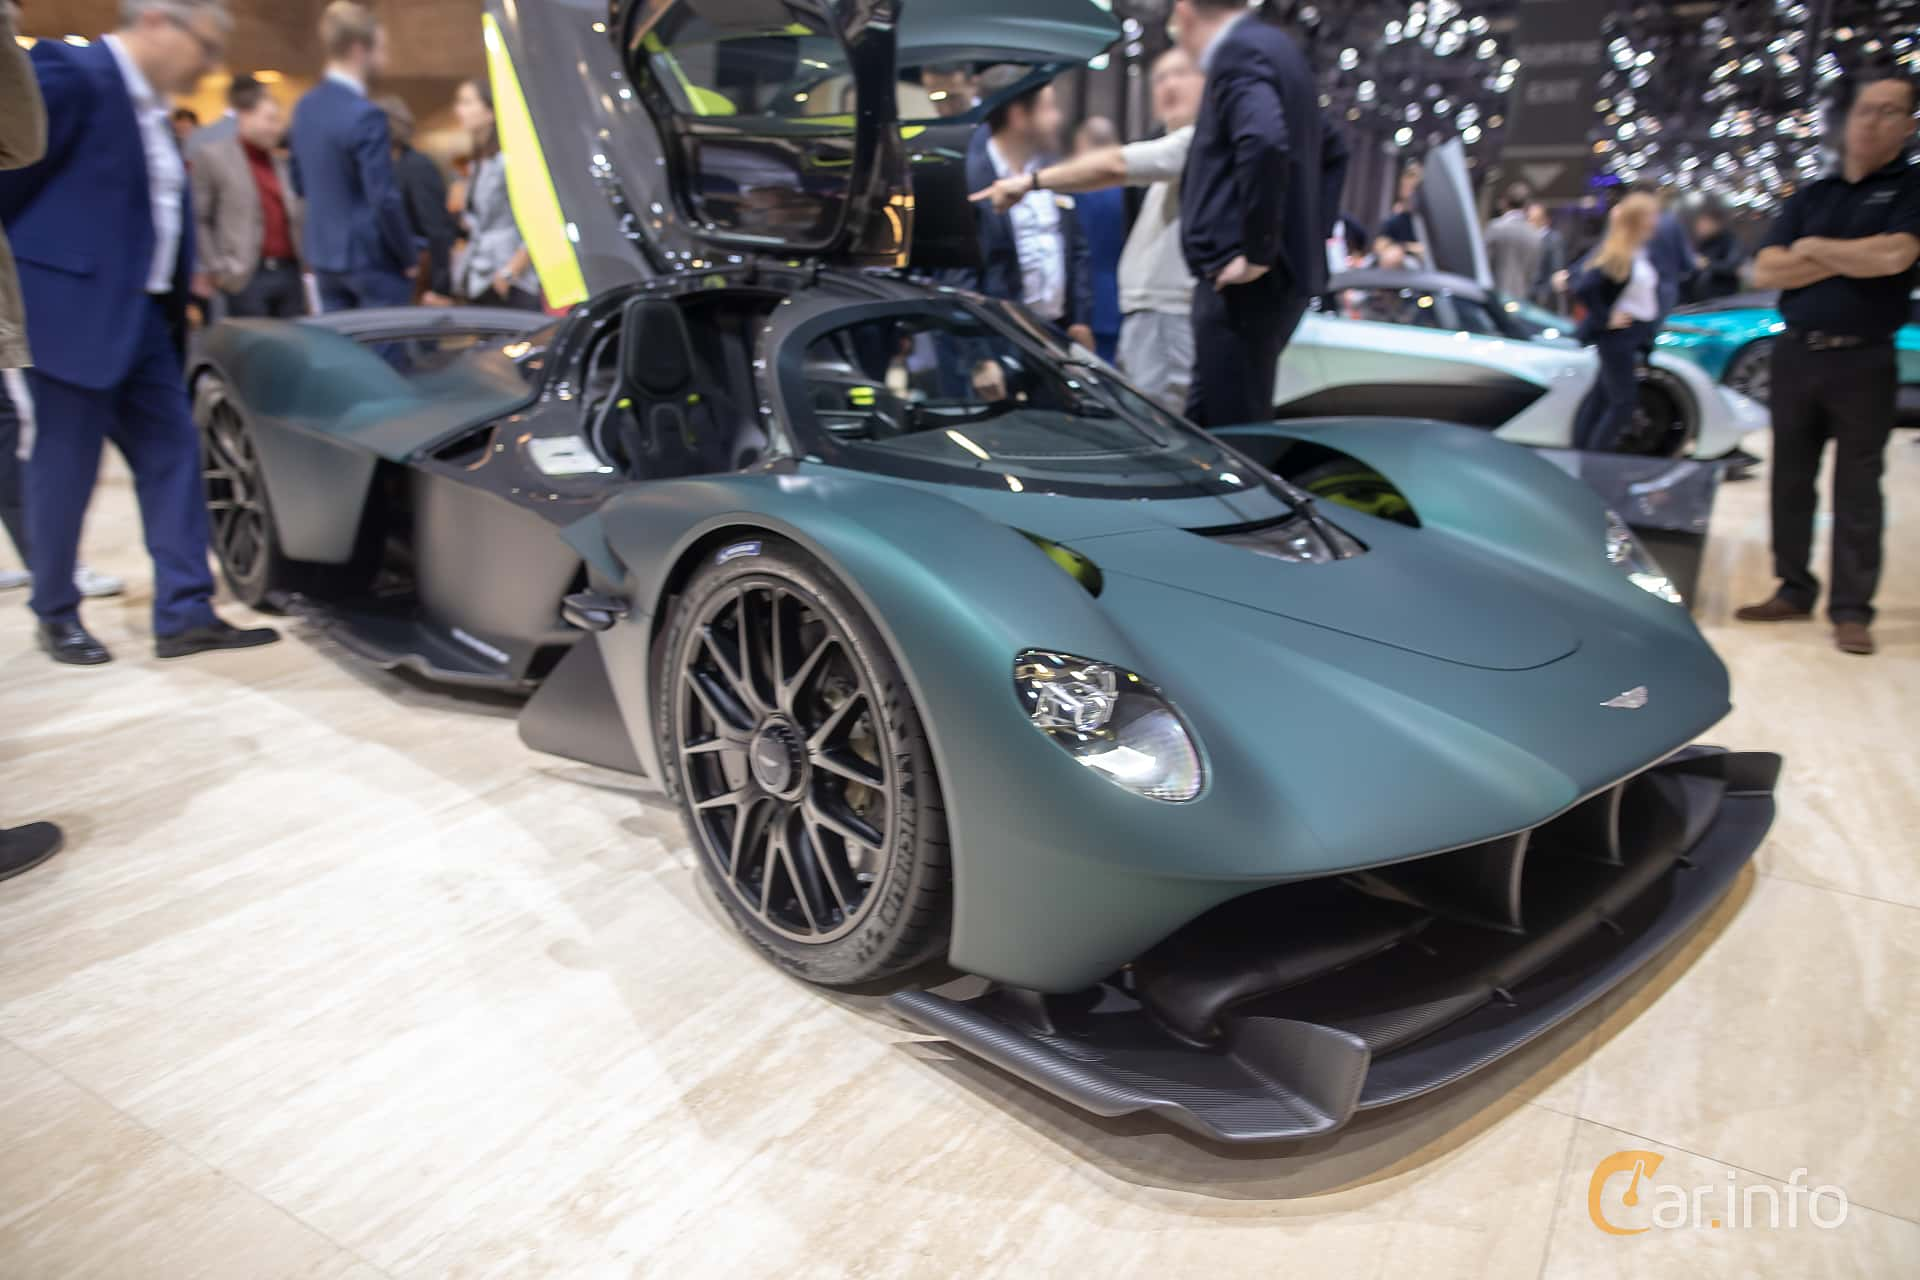 10 Images Of Aston Martin Valkyrie 6 5 V12 Dct 1146hp 2019